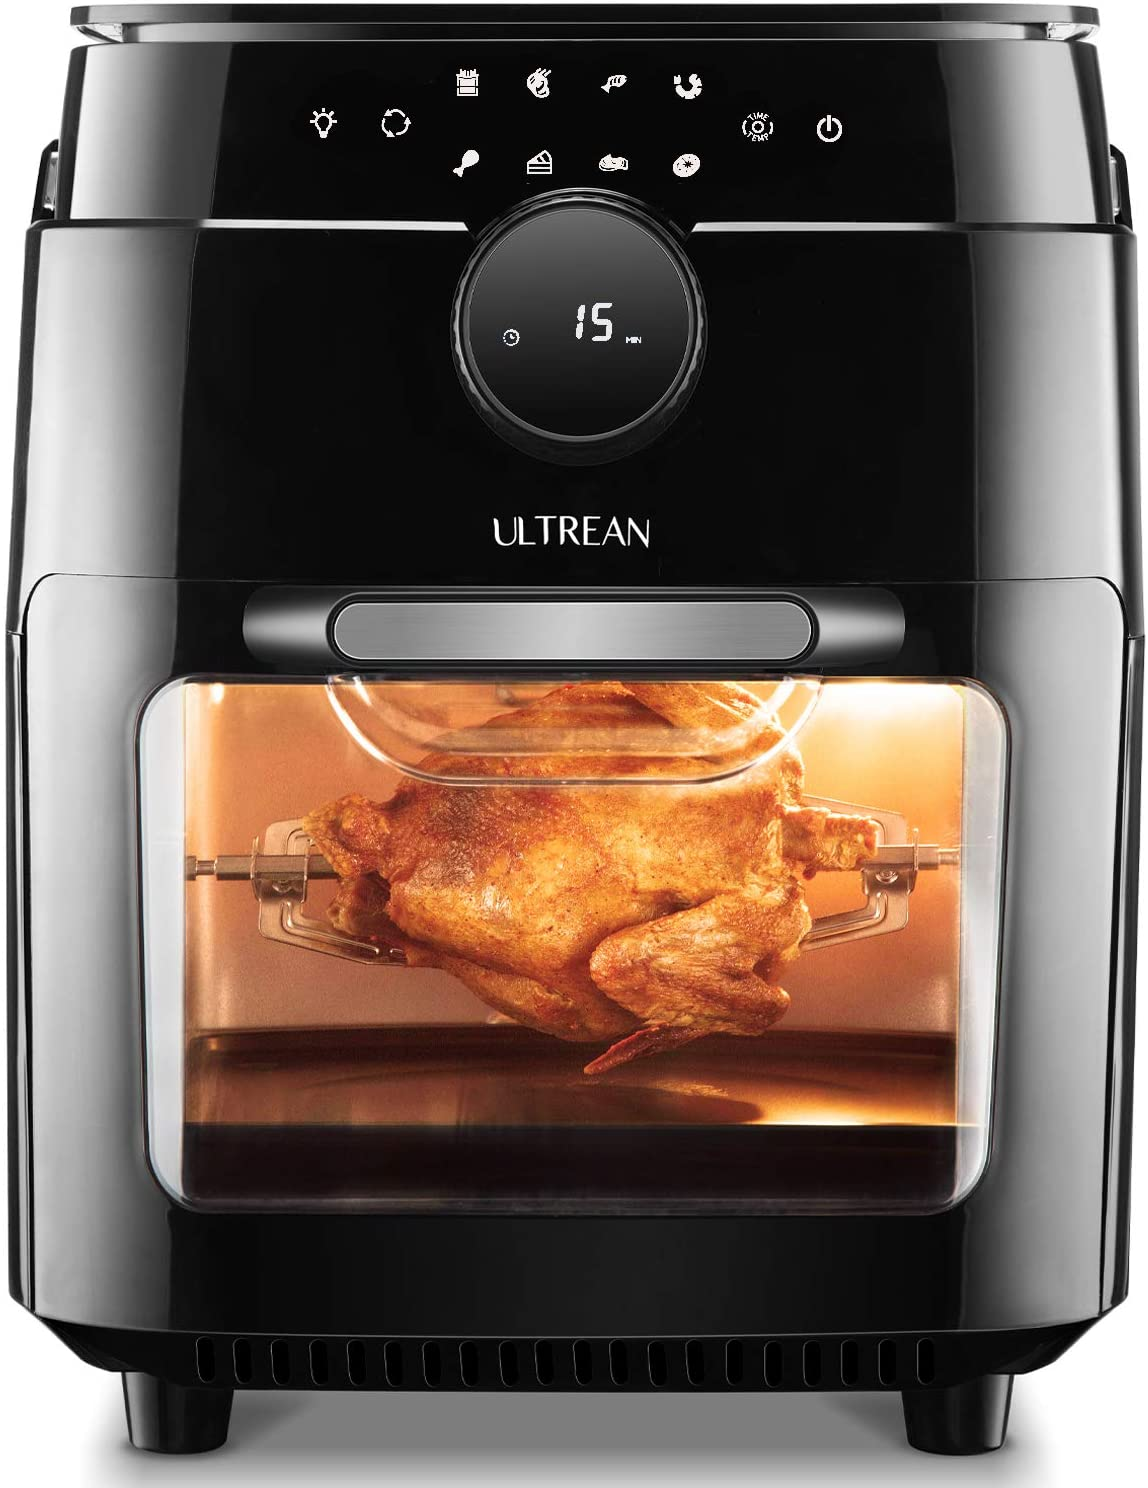 Ultrean Air Fryer, 12.5 Quart Air Fryer Oven, Toaster Oven with Rotisserie,Bake,Dehydrator,Auto Shutoff and 8 Touch Screen Preset, 8 Accessories & 50 Recipes